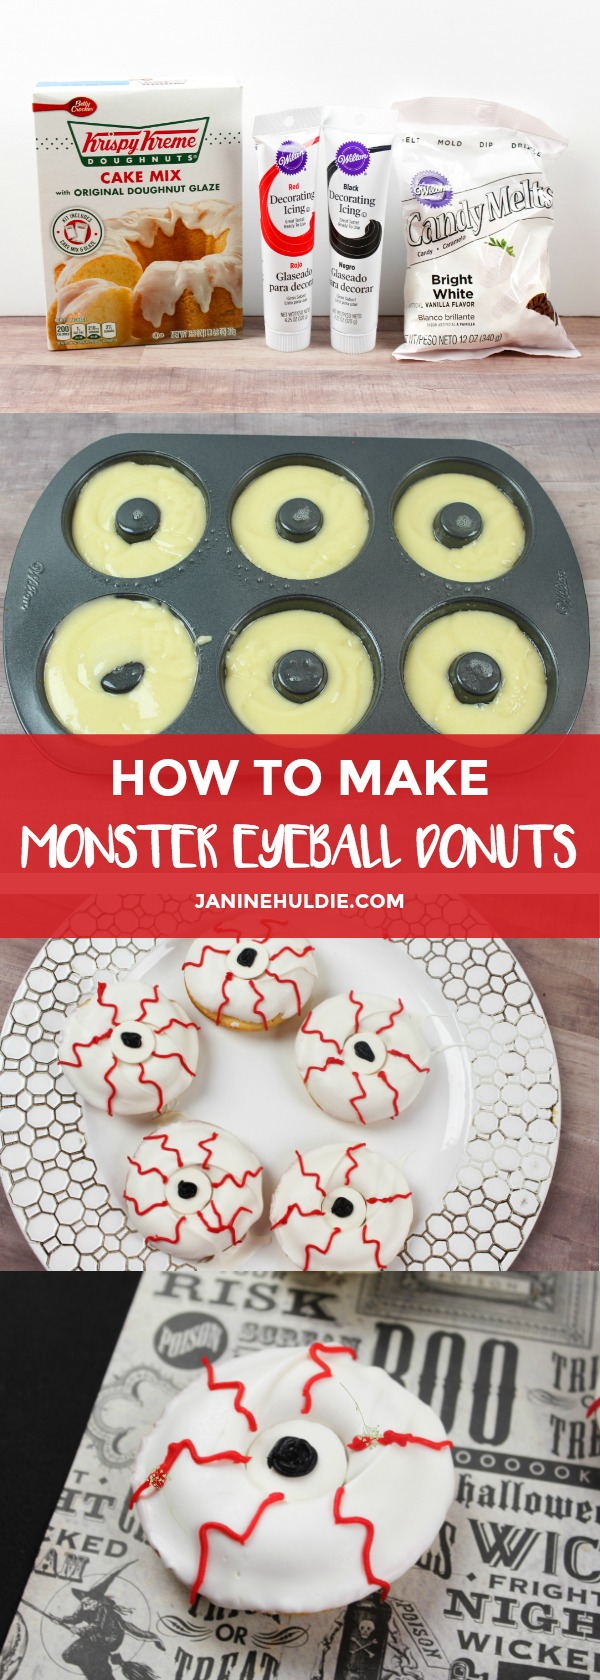 How to Make Monster Eyeball Cupcakes